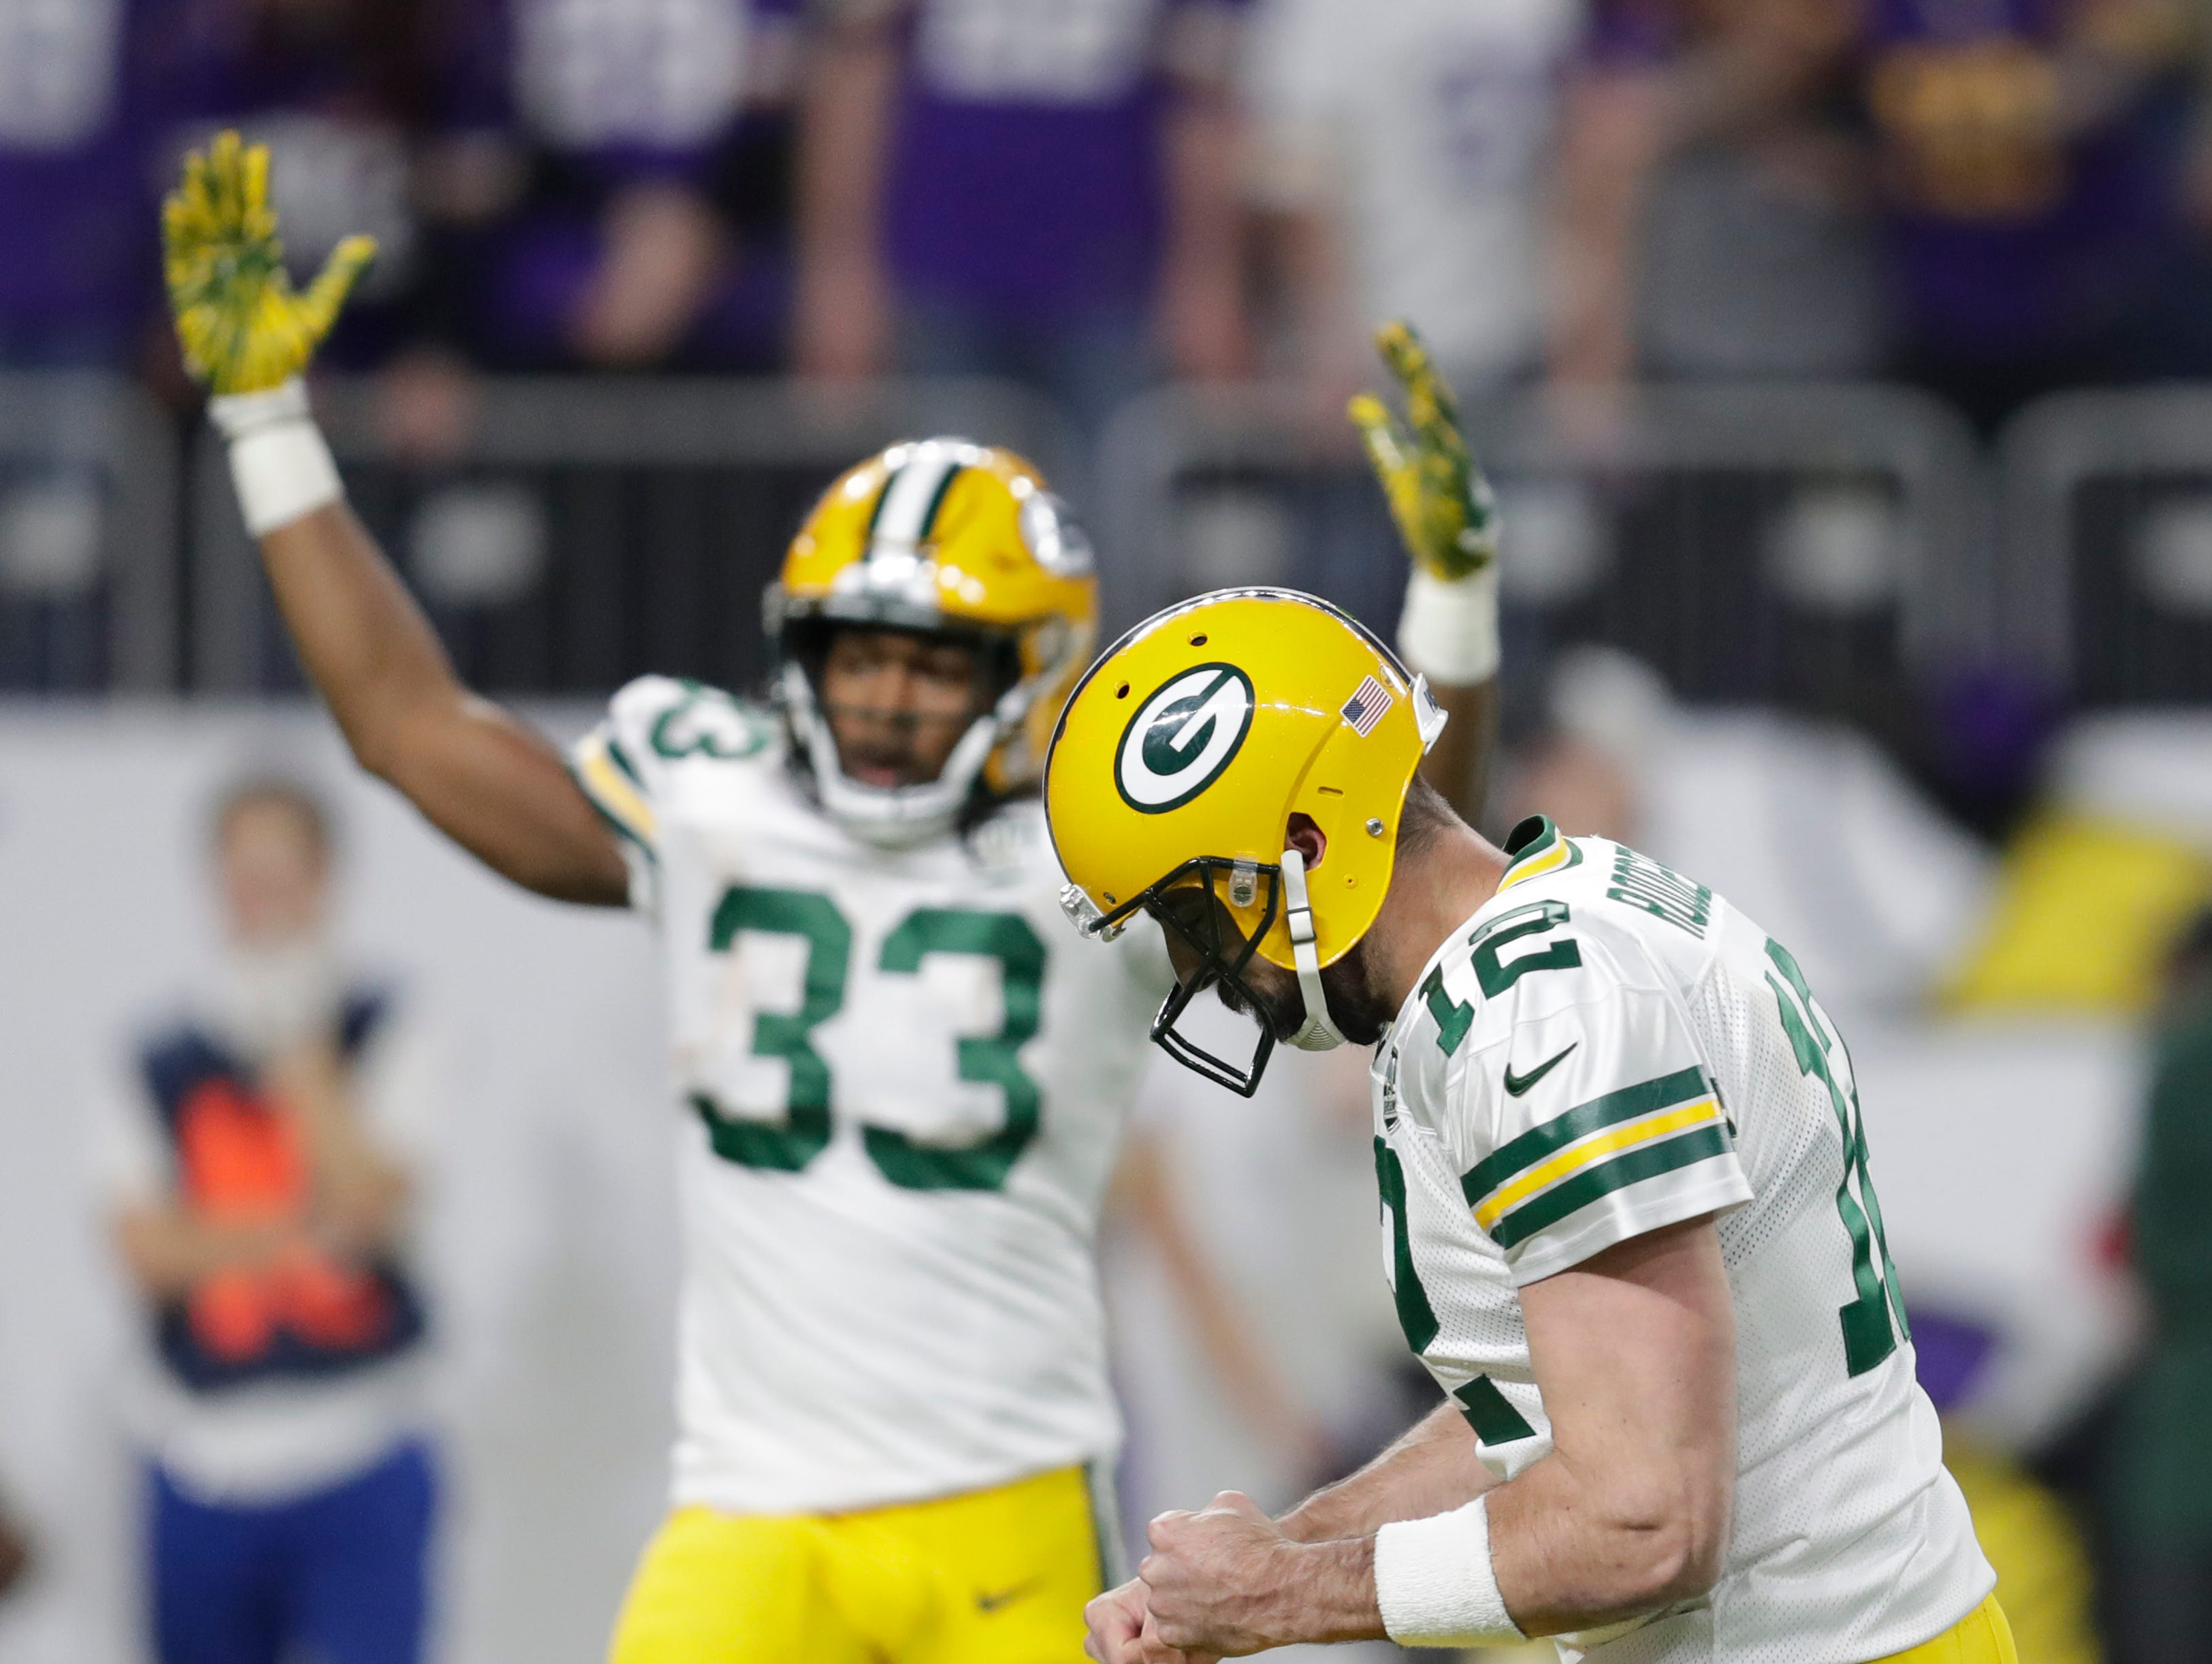 Green Bay Packers quarterback Aaron Rodgers (12) and running back Aaron Jones (33) celebrate a first quarter touchdown pass against the Vikings during their football game Sunday, November 25, 2018, at U.S. Bank Stadium in Minneapolis, Minn. 